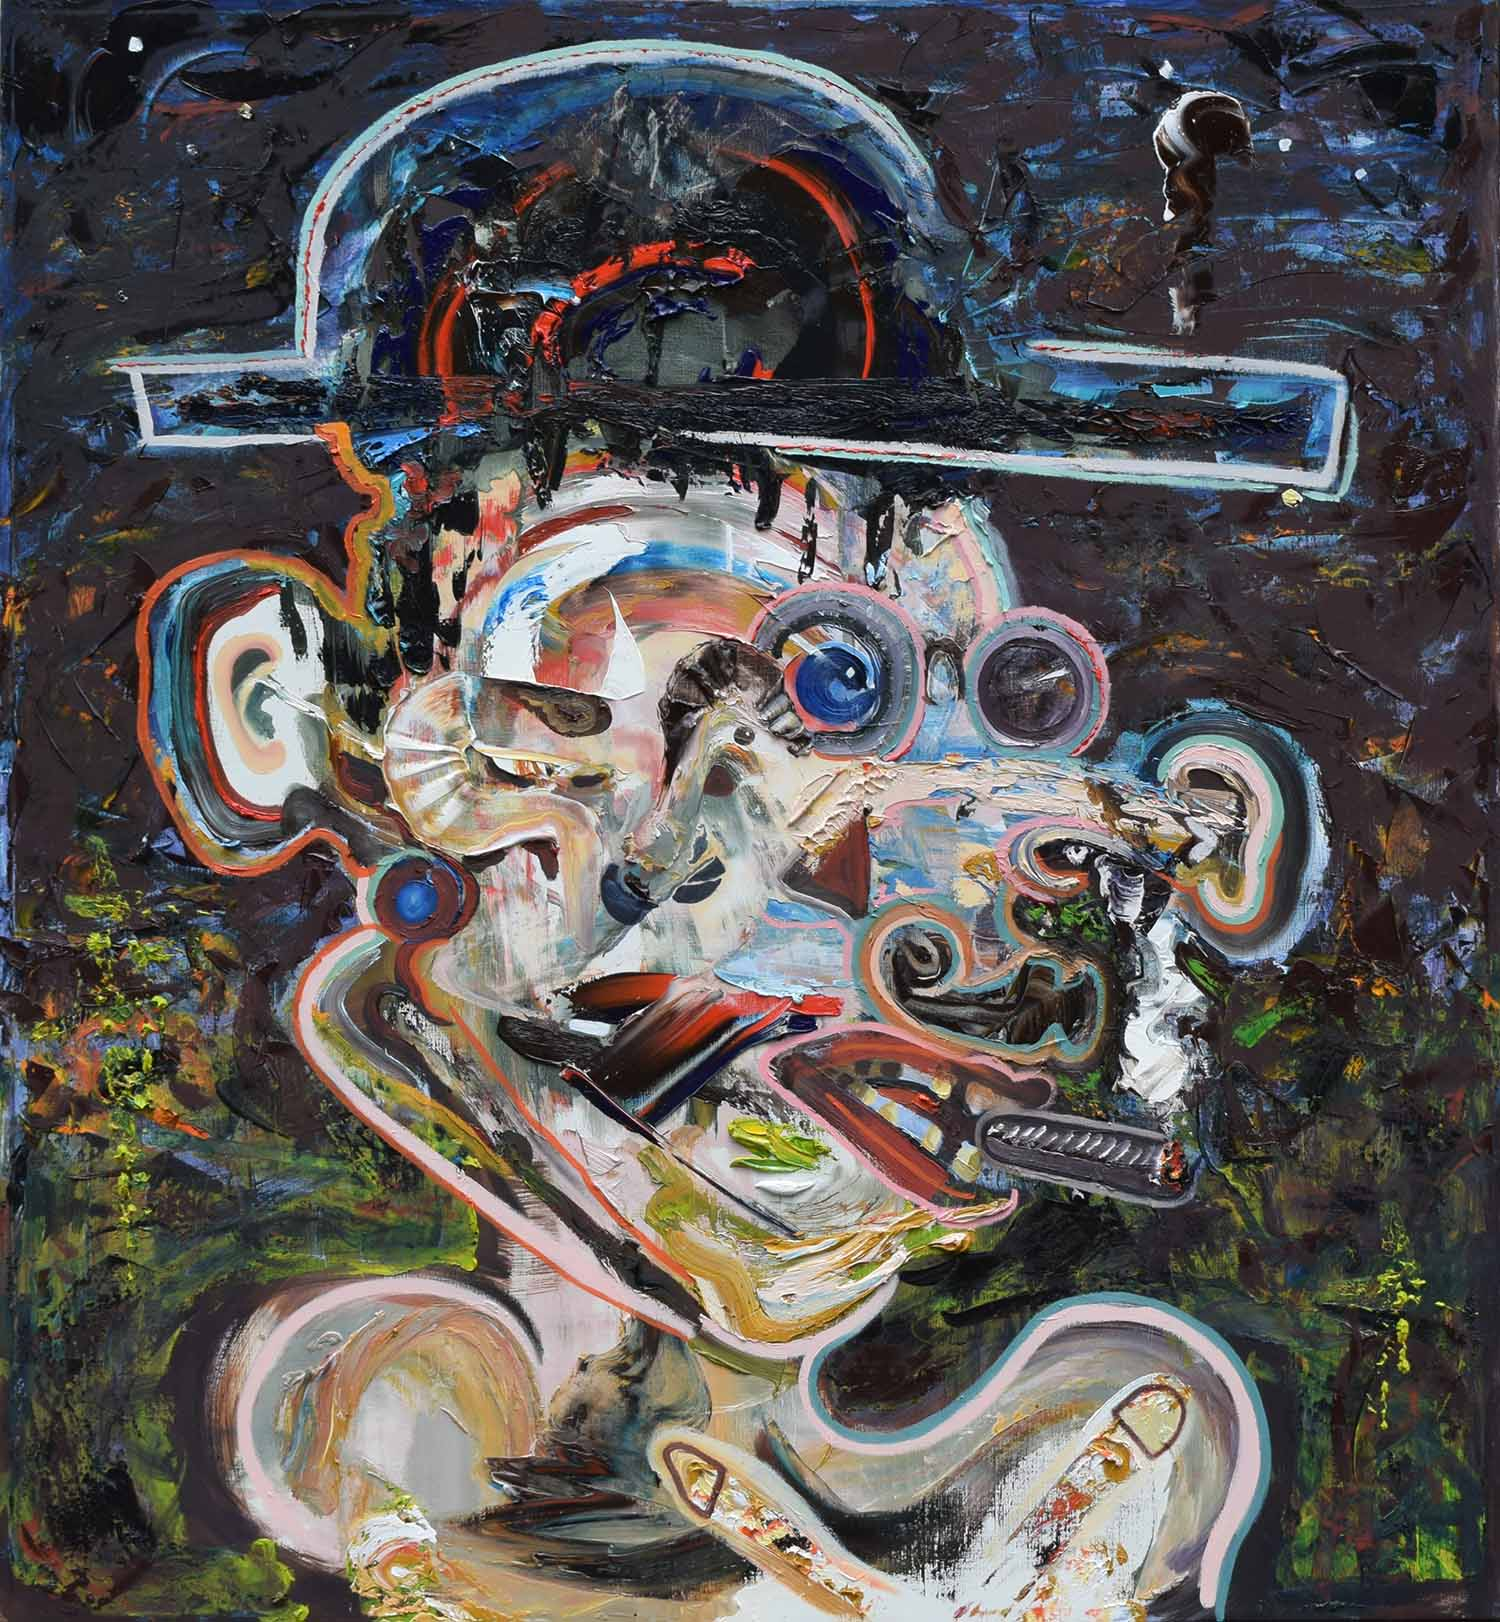 laurence jansen, laurence jansen artist, laurence jansen painter, portrait art, portrait painting, abstract portrait, abstract portraiture, impasto technique, painting, fine art painting, contemporary art, contemporary painting, laurence jansen, laurence jansen art, laurence jansen painting, laurence jansen artist, london based artist, contemporary painter, art,